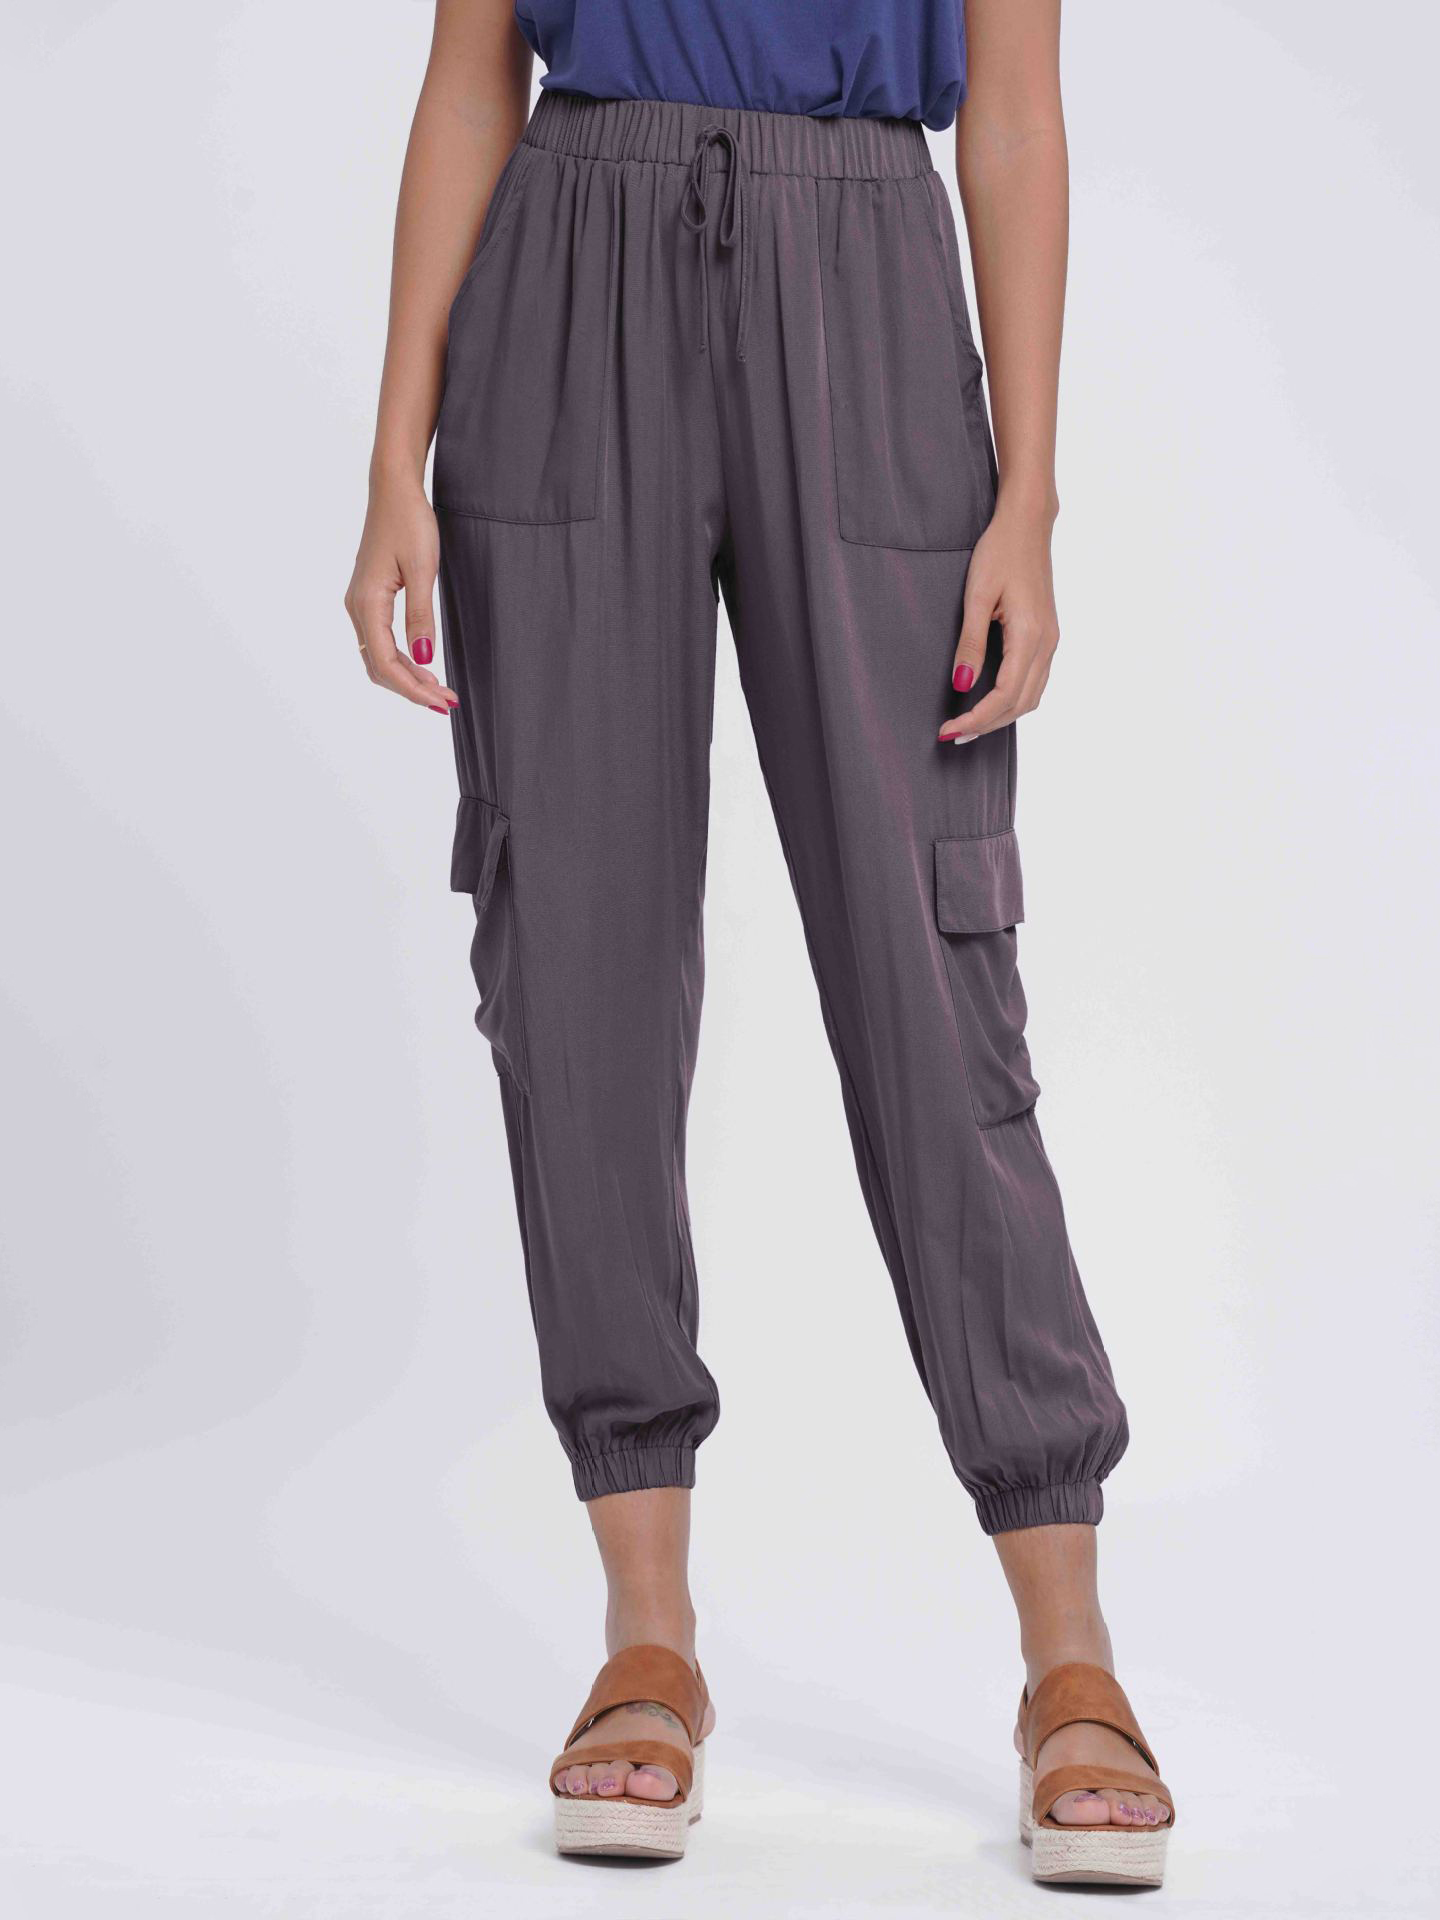 Solid Drawstring Cargo Pants For Women